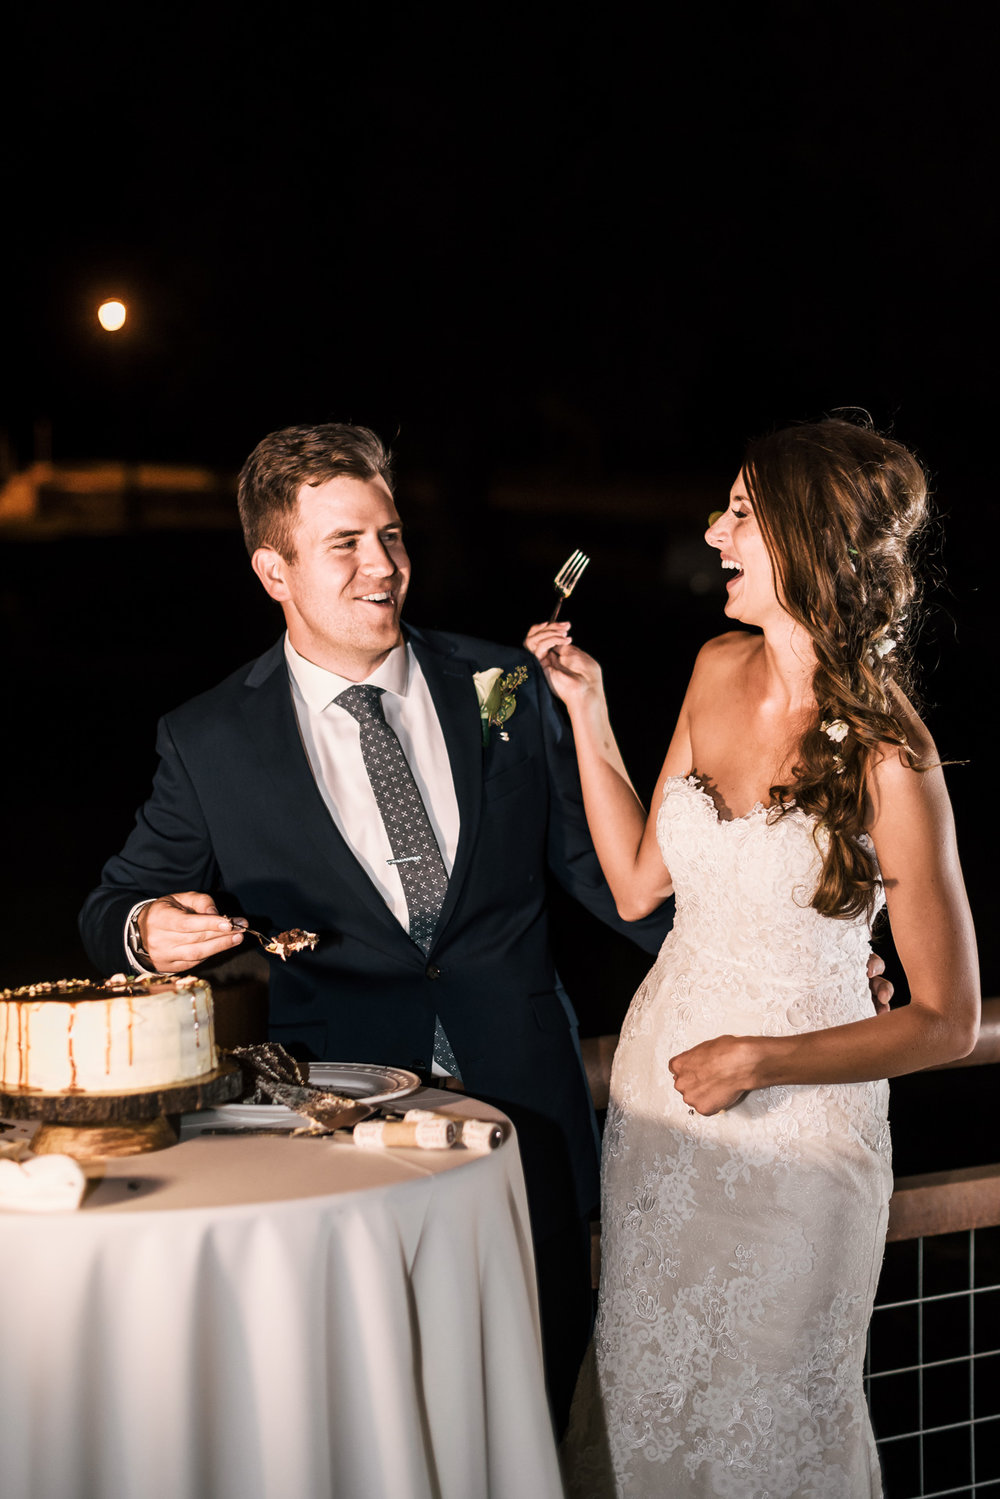 bride and groom share a laugh after cake cutting during their wedding at the secret garden located at the Historic Parish ranch in Oak Glen California